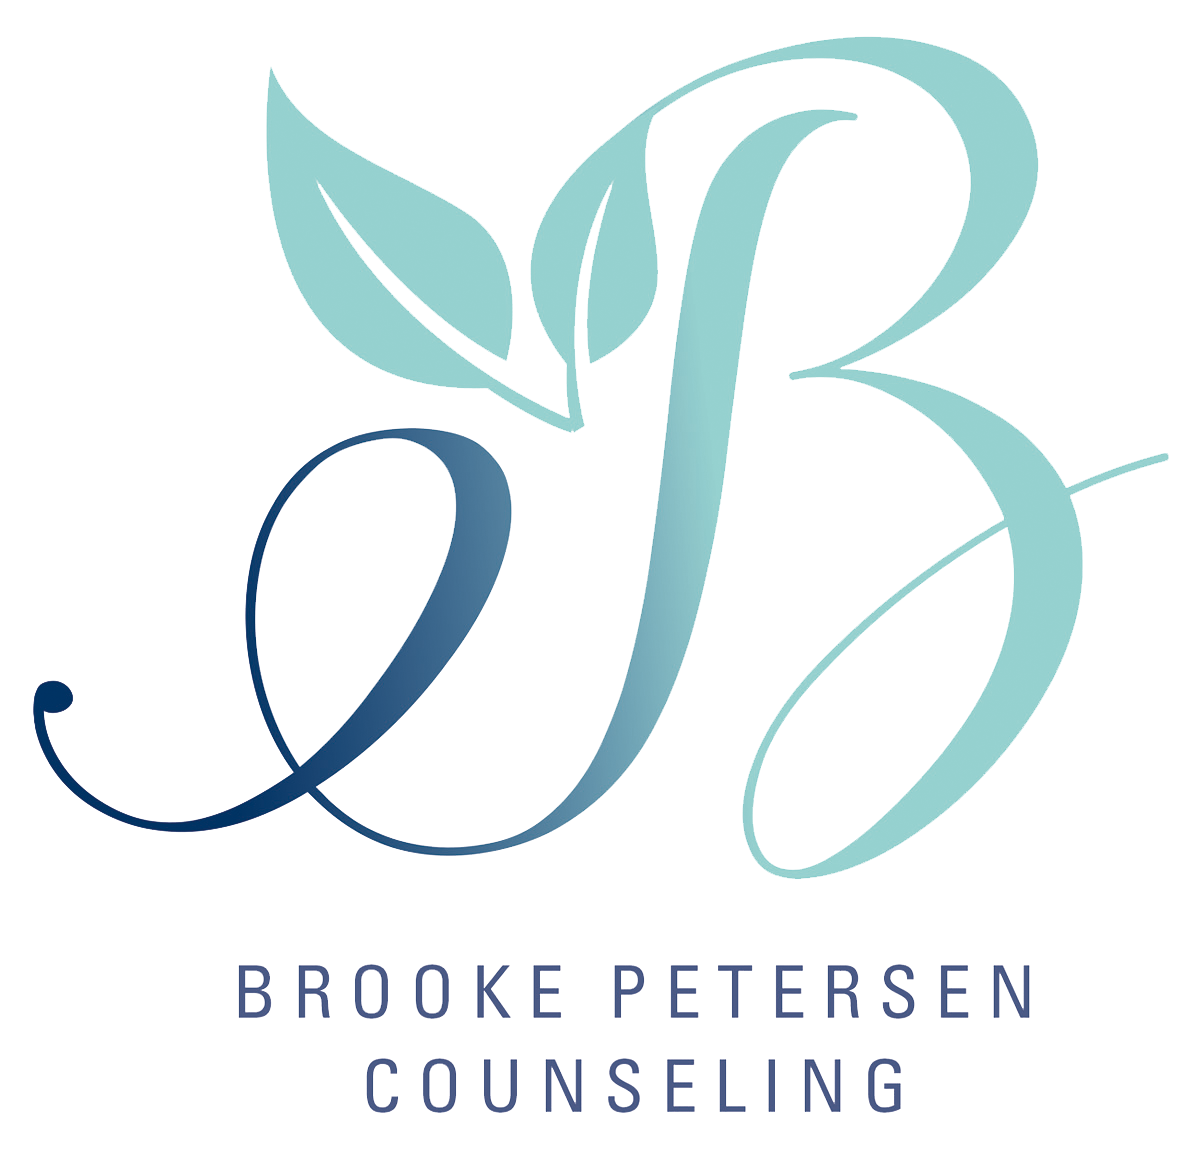 Brooke Petersen Counseling